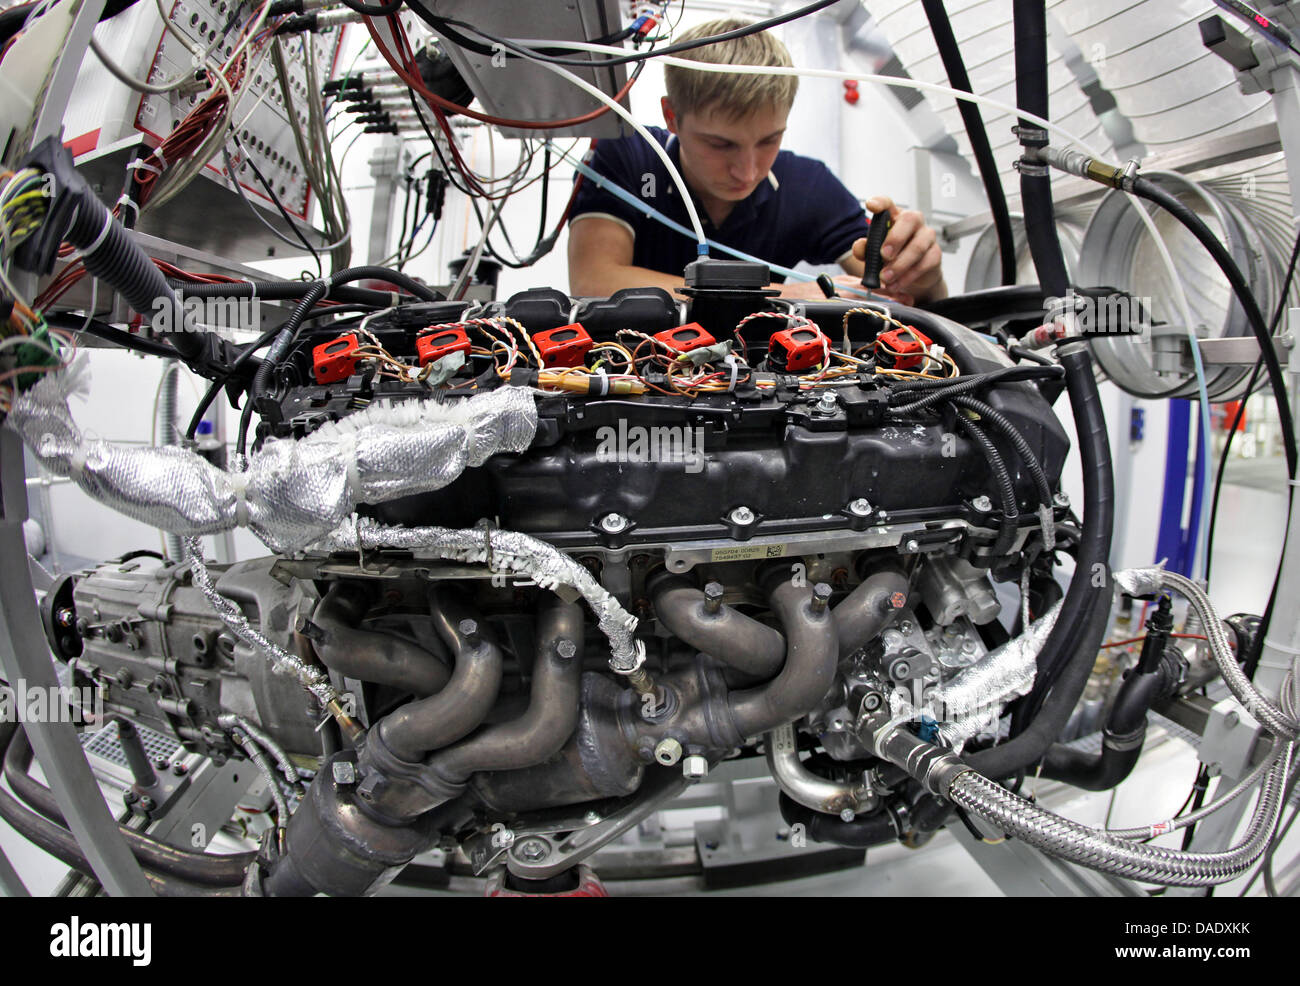 Christian Freund Testing Station Mechatronich Technician Prepares Electrical Installation Wiring Pictures November 2011 A Car Engine For Series Of Tests In Fev Sandersdorf Brehna Germany 03